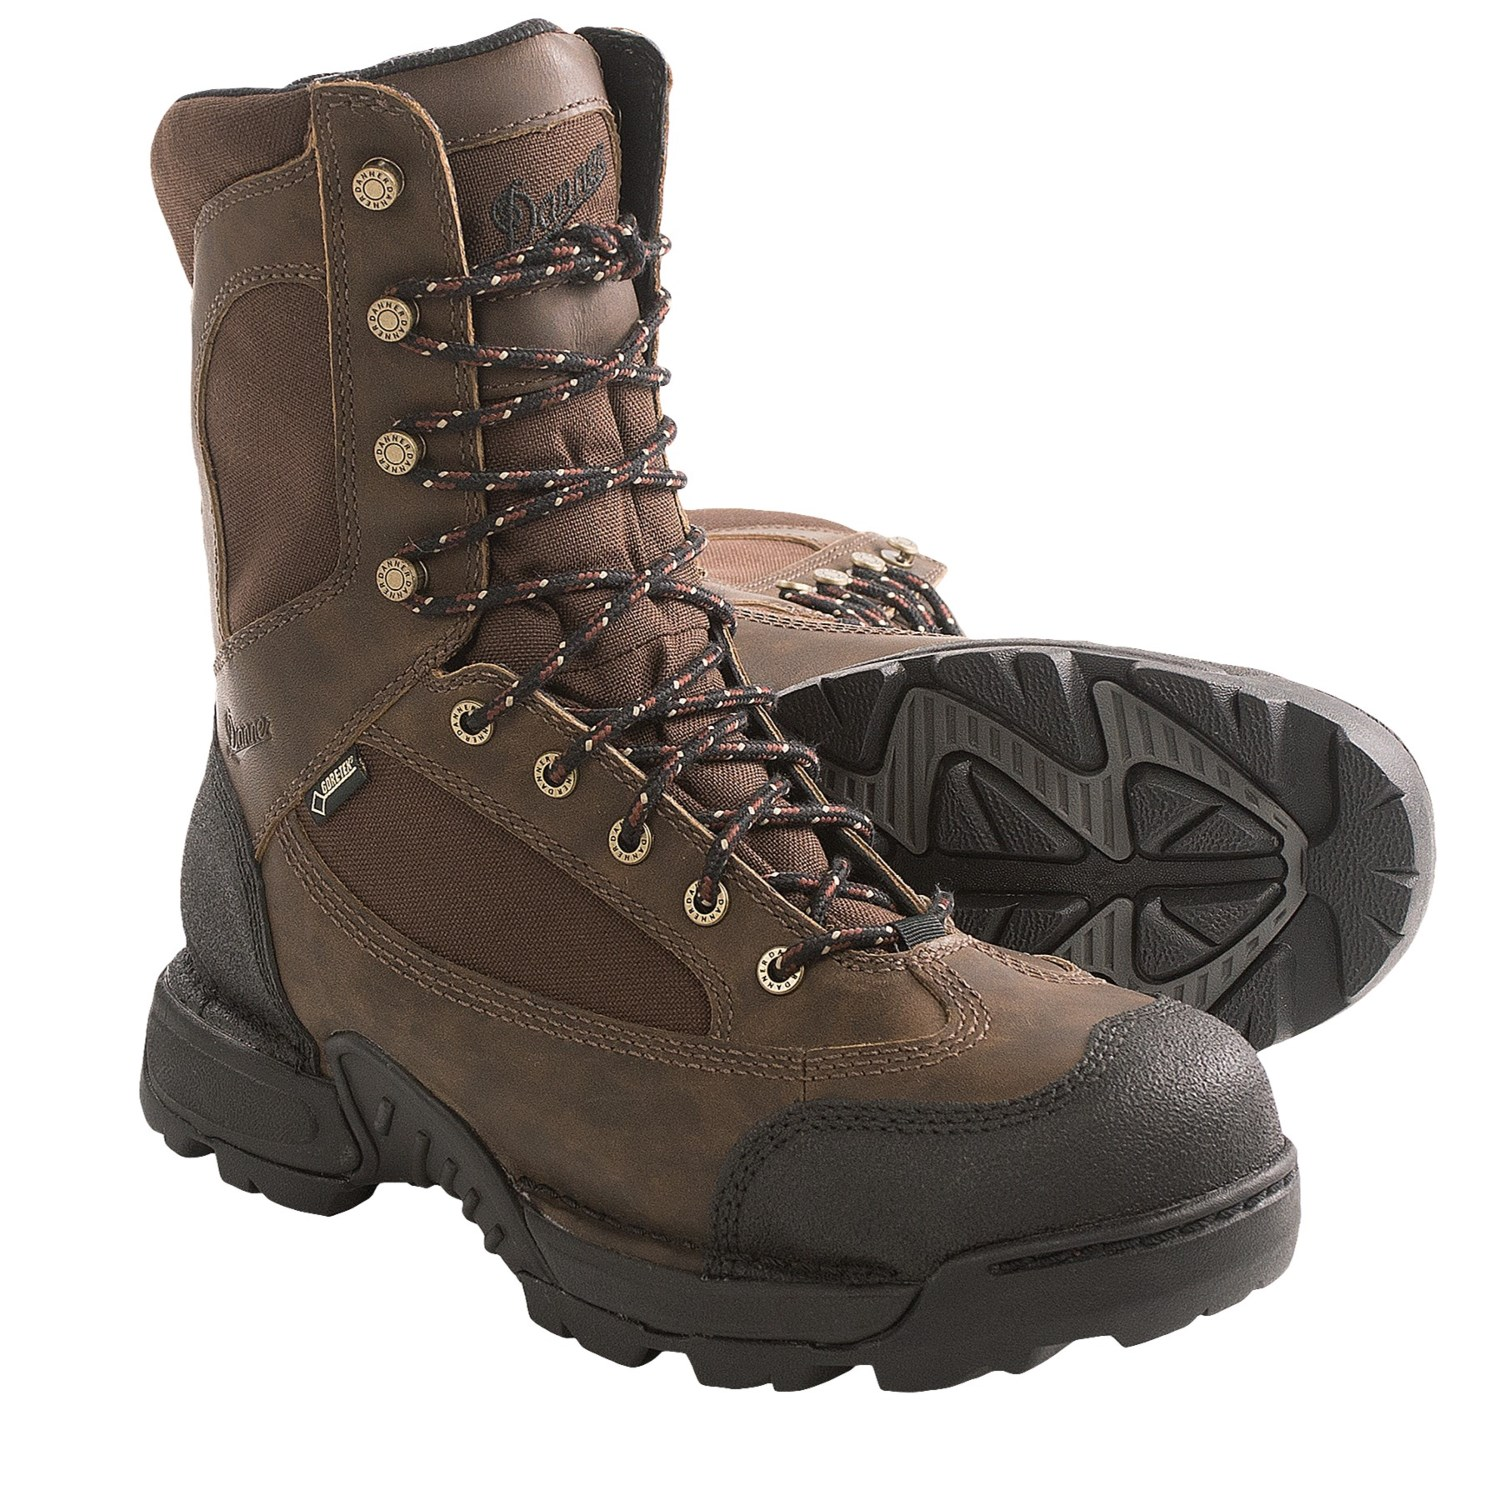 Danner Pronghorn Gore-Tex® Hunting Boots (For Men) 8072J - Save 26%